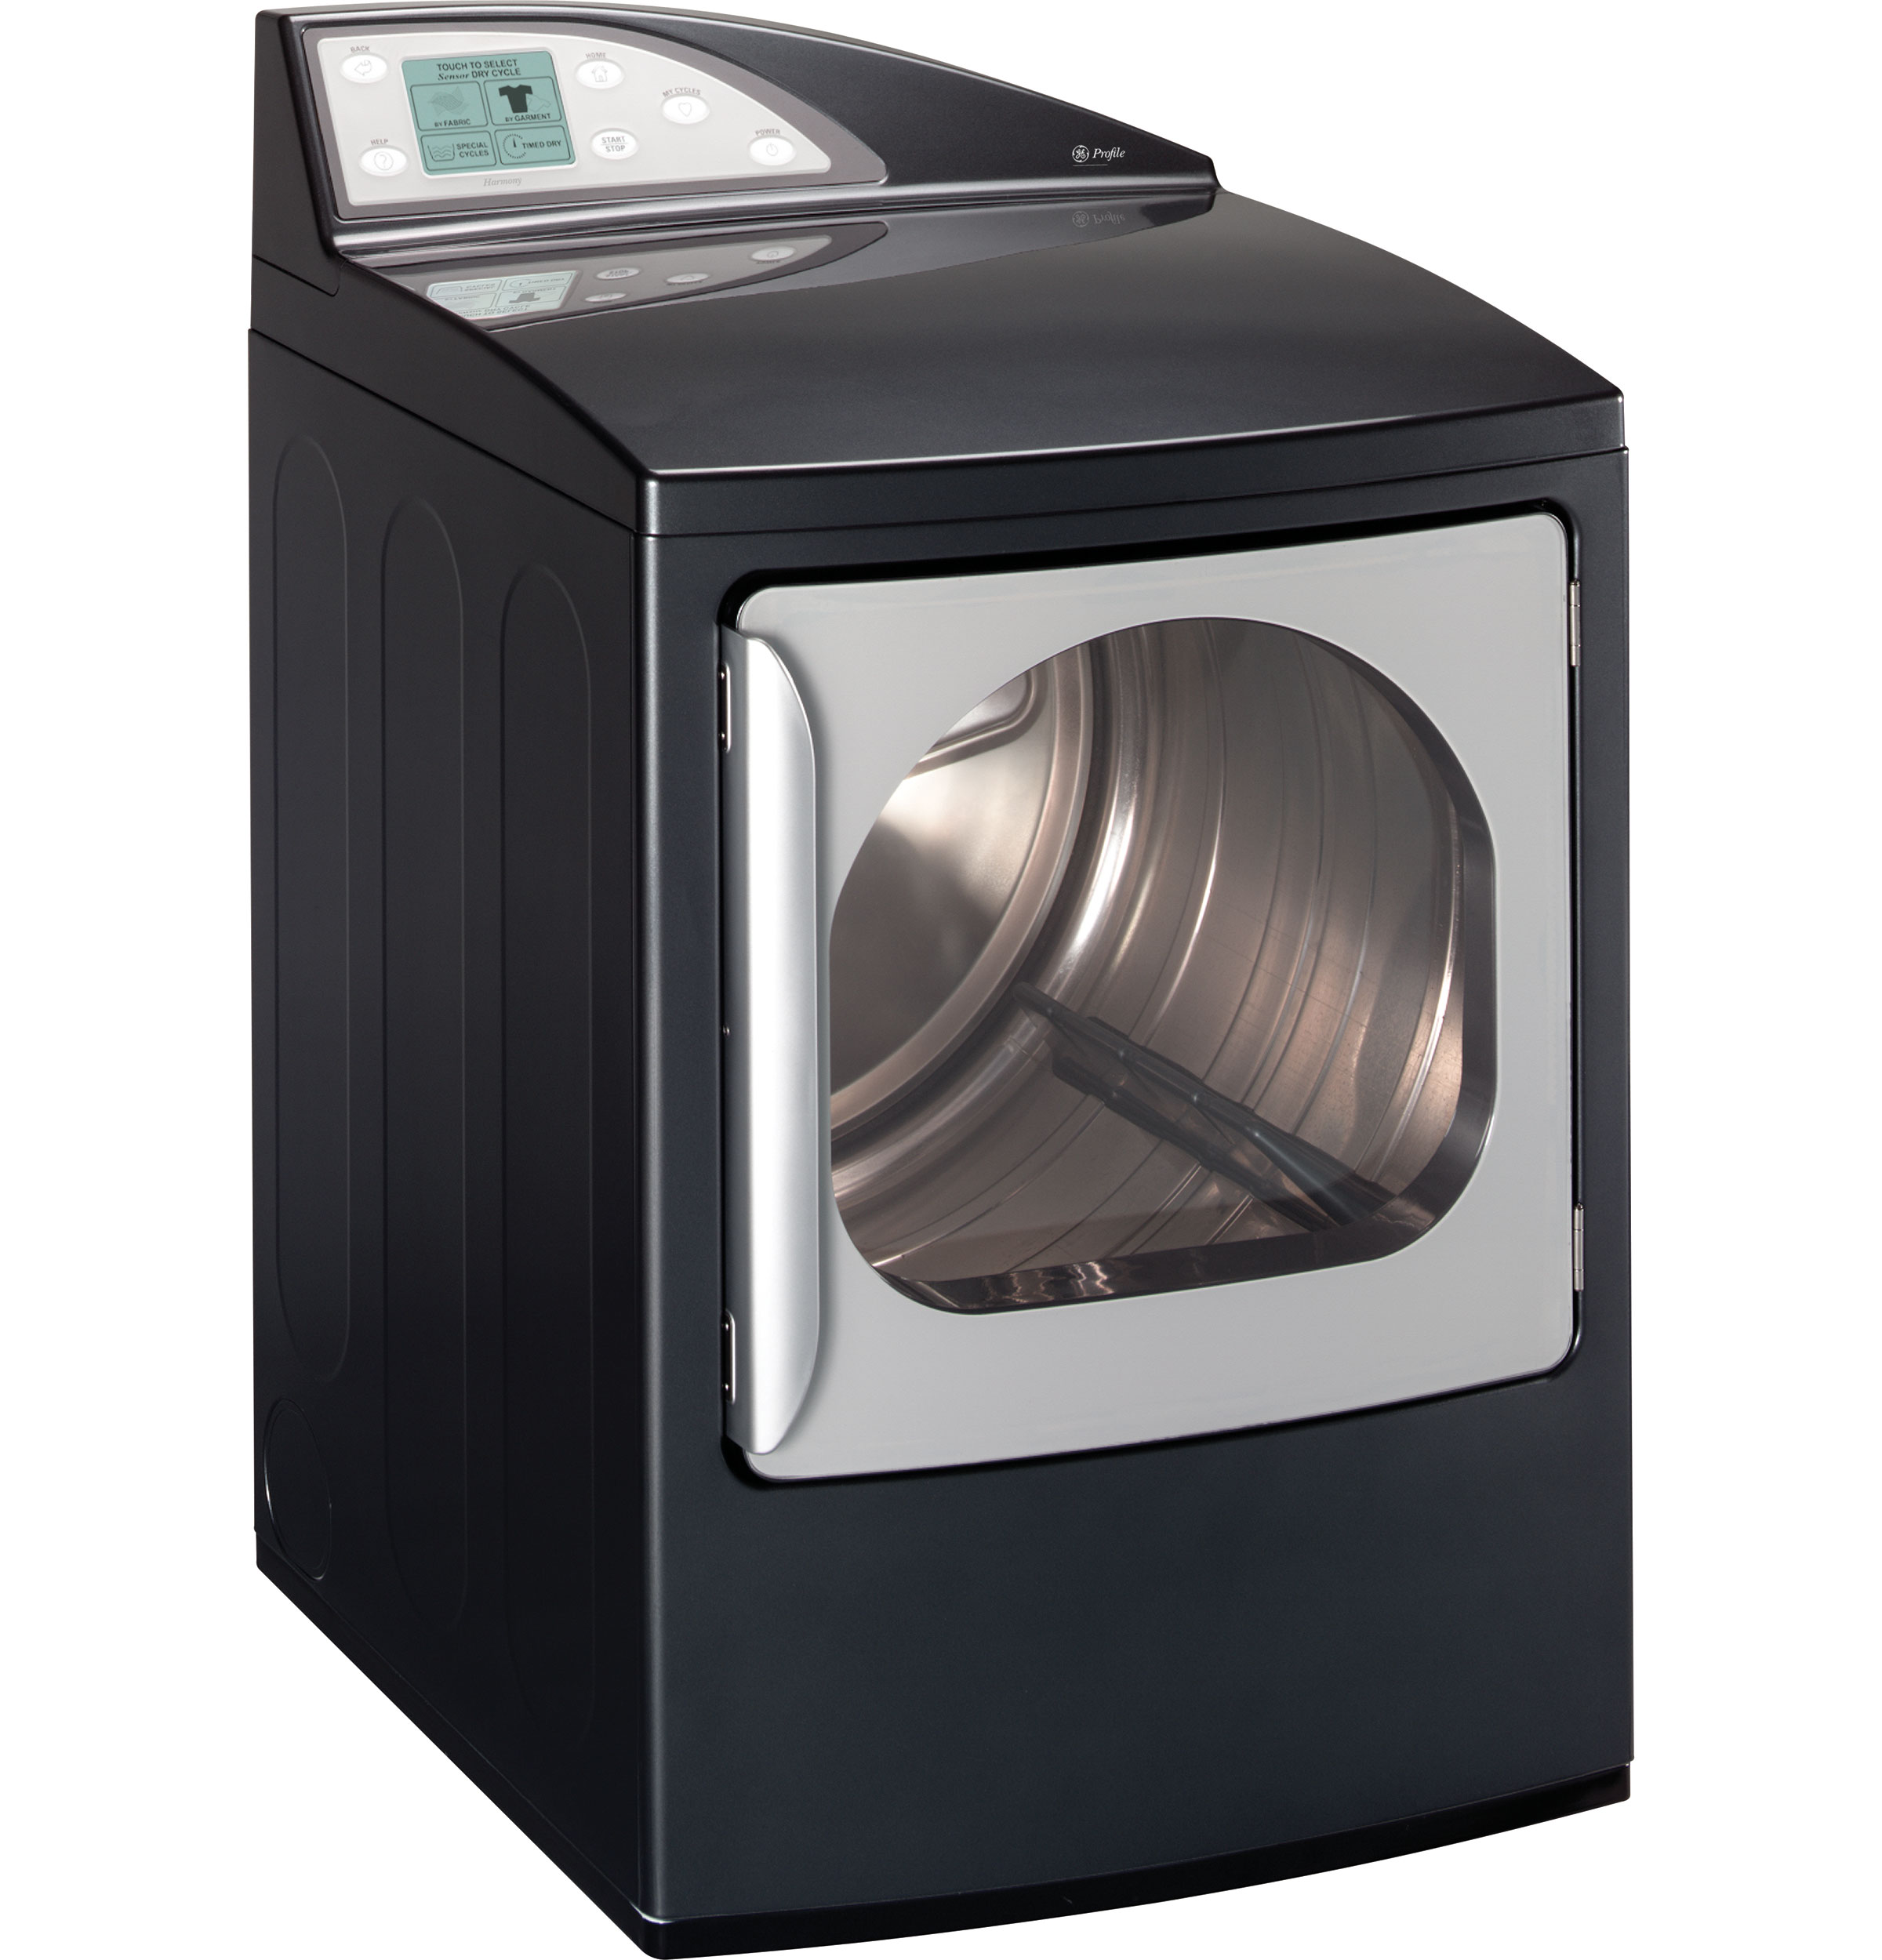 Harmony Washer And Dryer